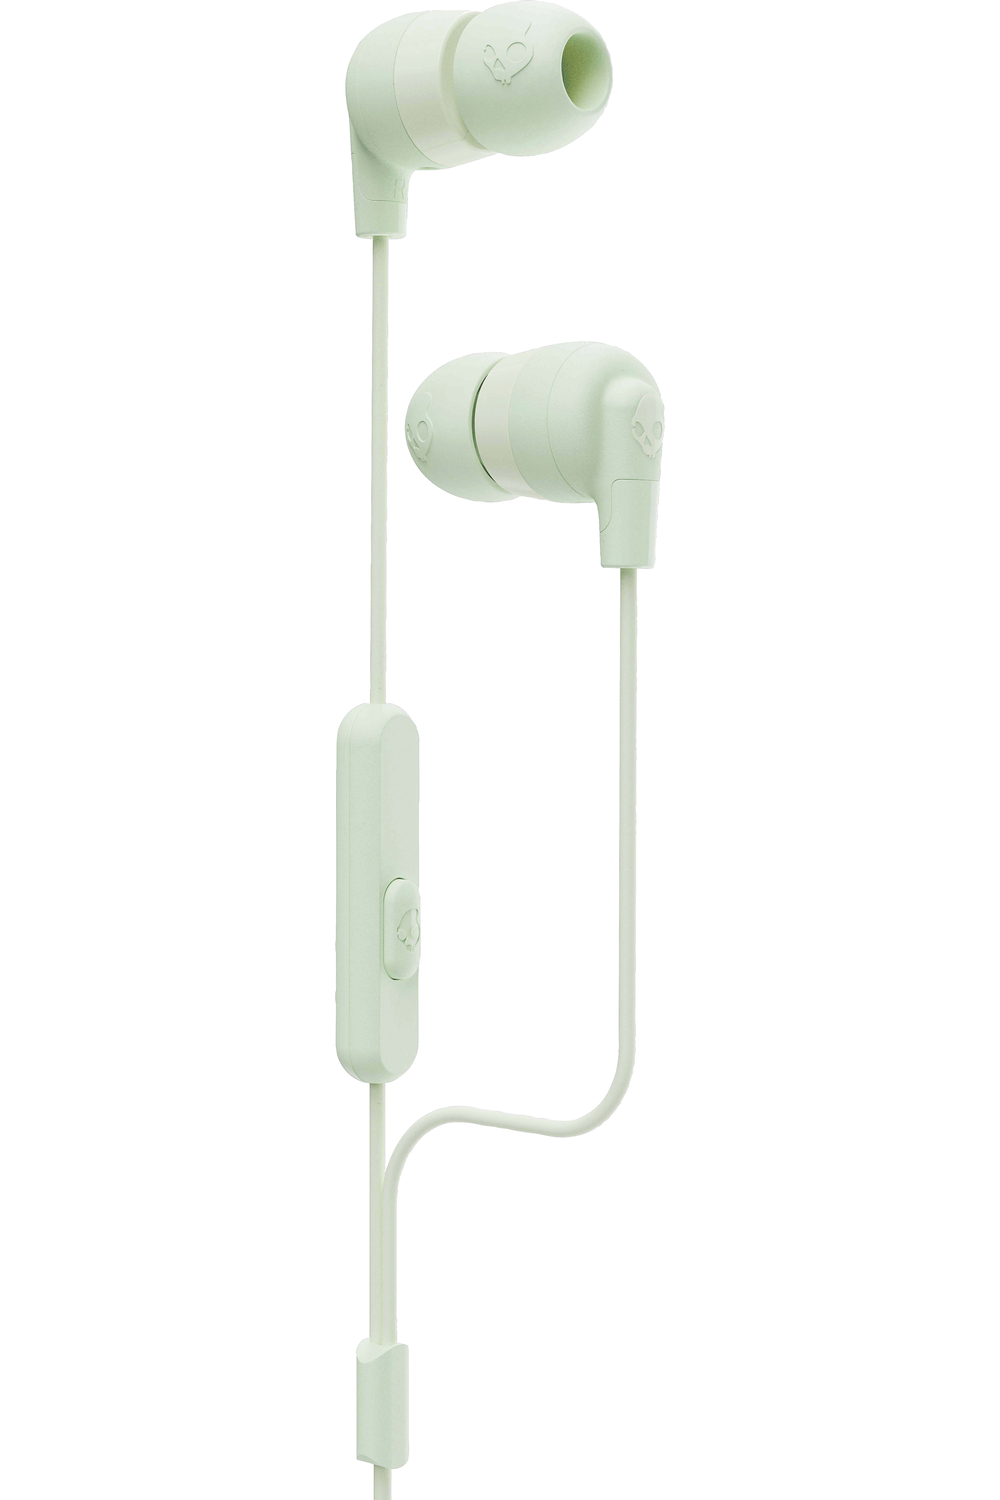 Skullcandy Ink'd+ In-Ear Earbuds with Mic